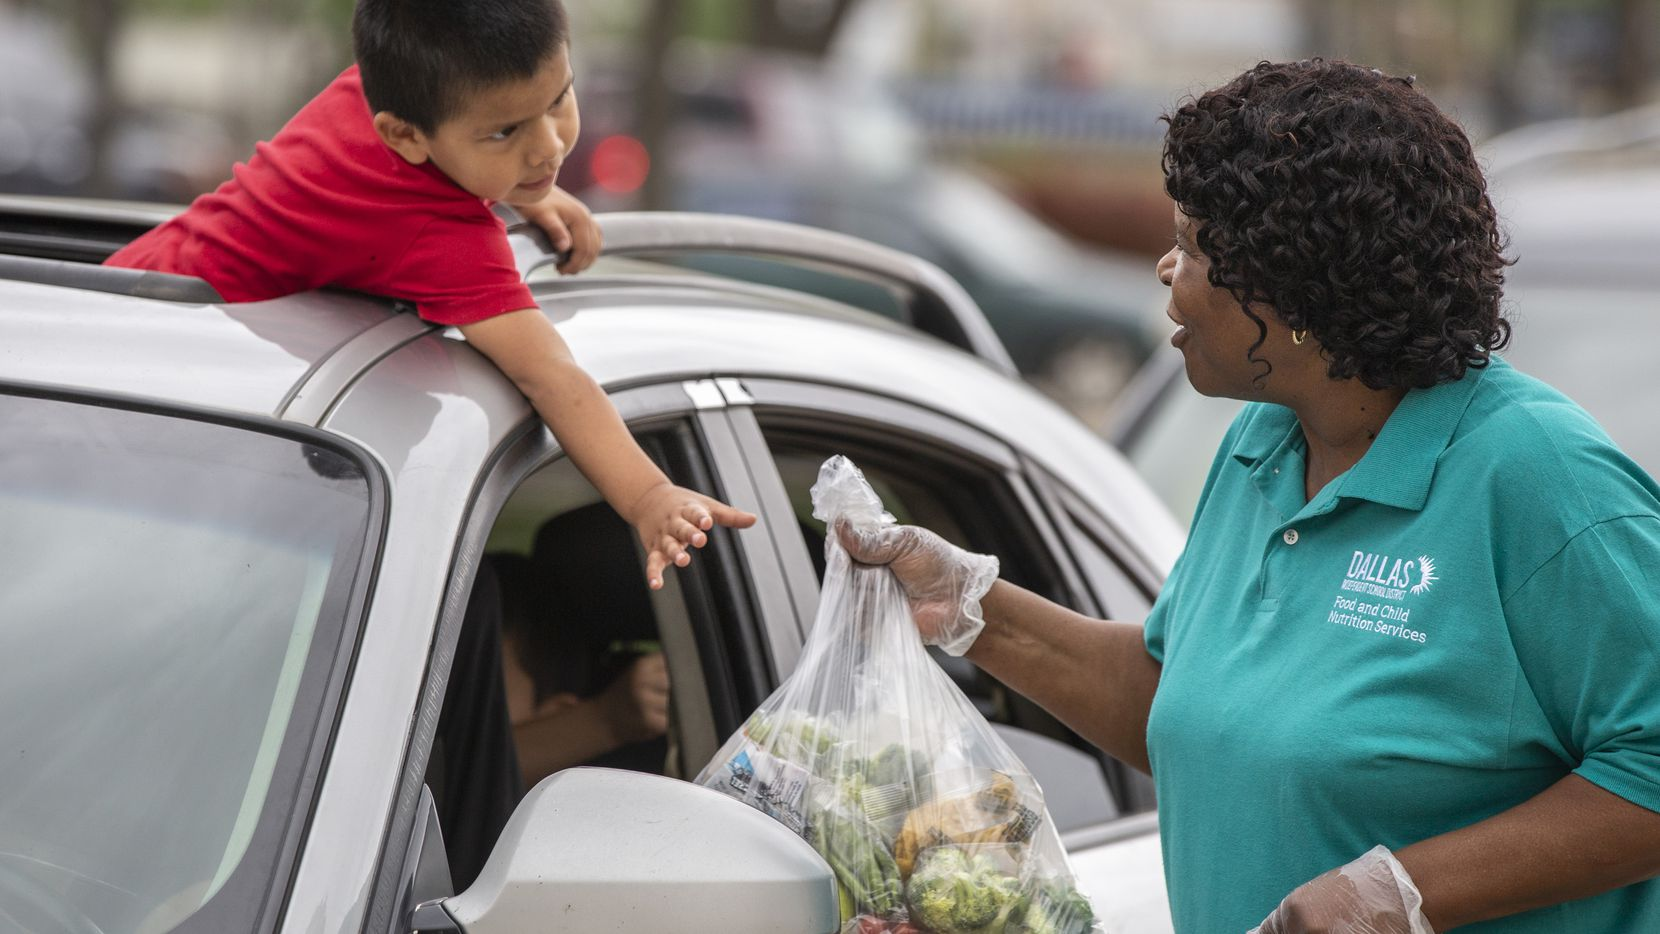 As he hangs out of his family's car sunroof, Isaias Ovalle, 3, reaches for bagged school meals from food service supervisor Patricia Jackson (right) at Medrano Middle School in Dallas on Thursday, April 2, 2020. Many families of students struggle with food insecurity, exacerbated by COVID-19 closures. DISD is now limiting food distribution to Thursdays only.